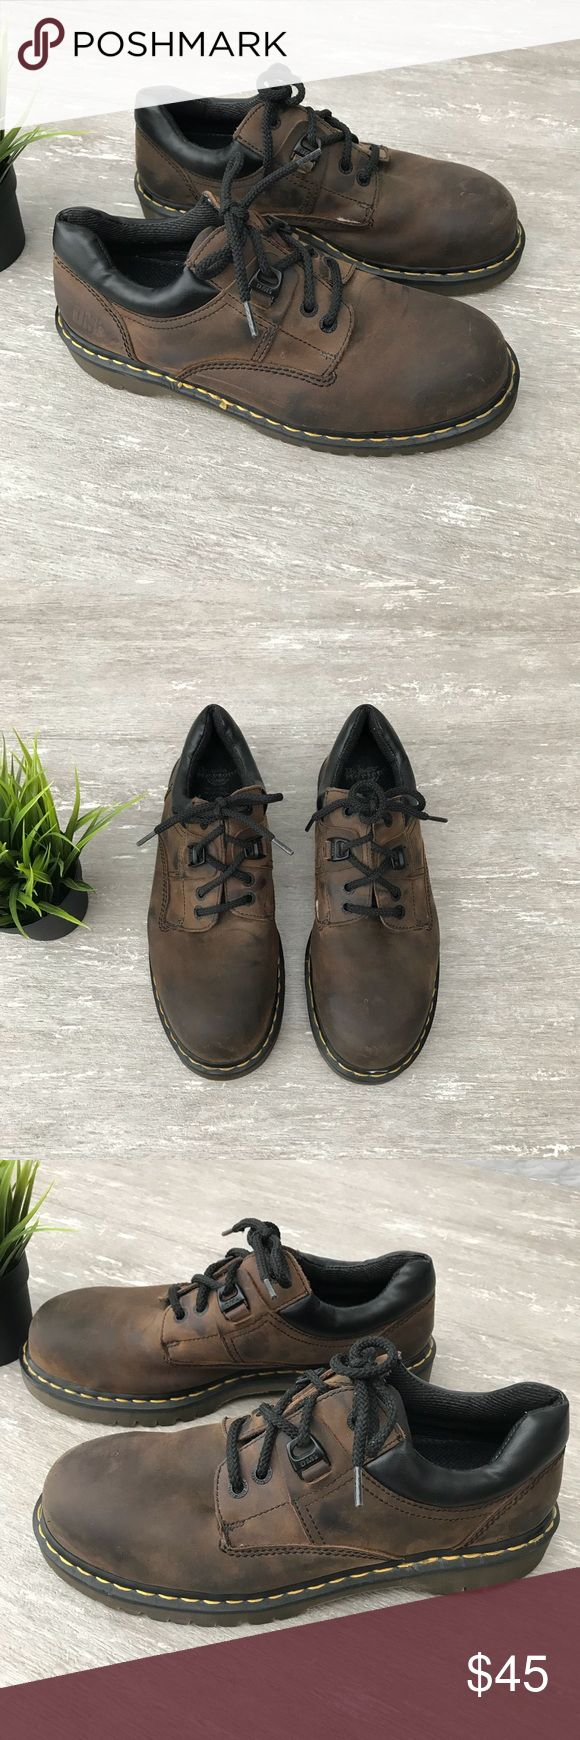 Dr. Martens Air Wair Steel Toe Work Shoes Dr. Martens Air Wair Industrial Men's Work Shoes   Steel Toe Safety Toe  Slip Resistant   Size: 11  Very Good Condition, light Scuffs Dr. Martens Shoes